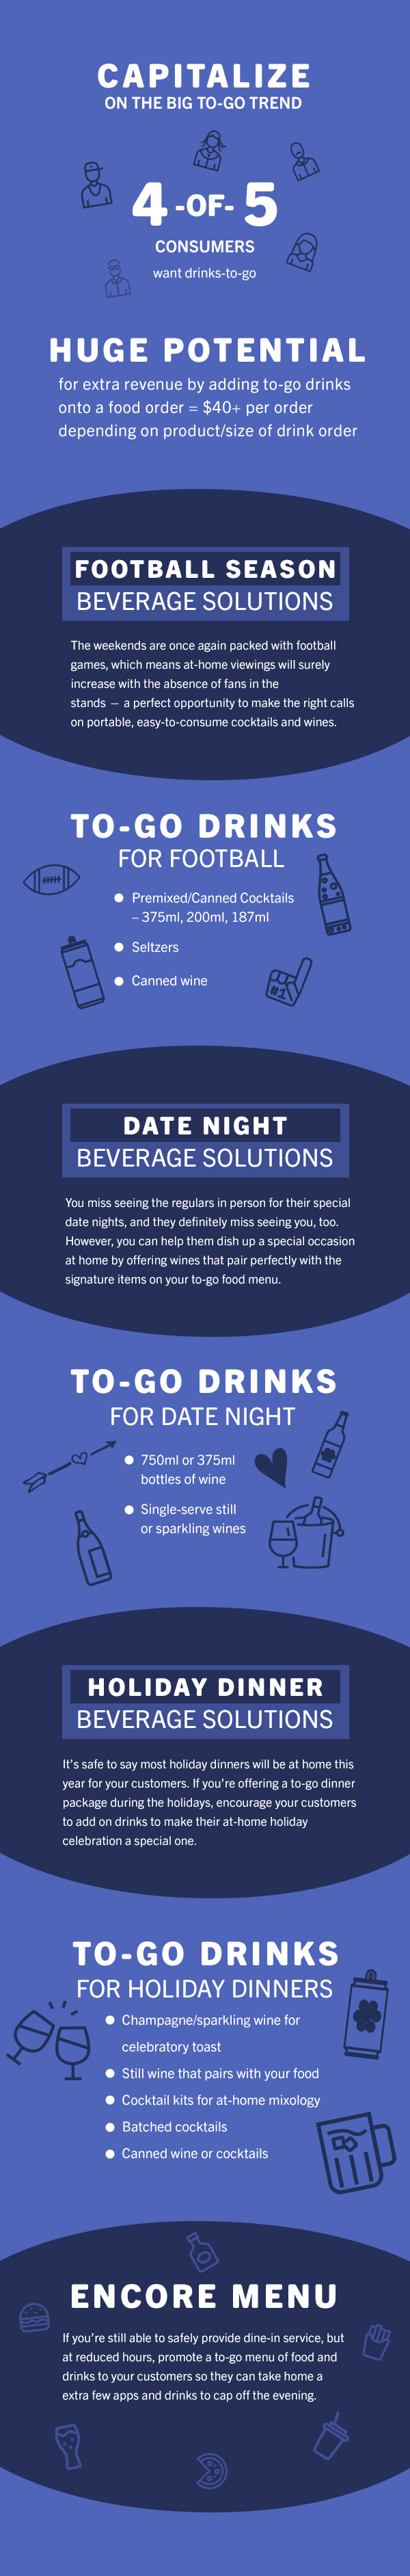 To-go drink solutions for winter infographic